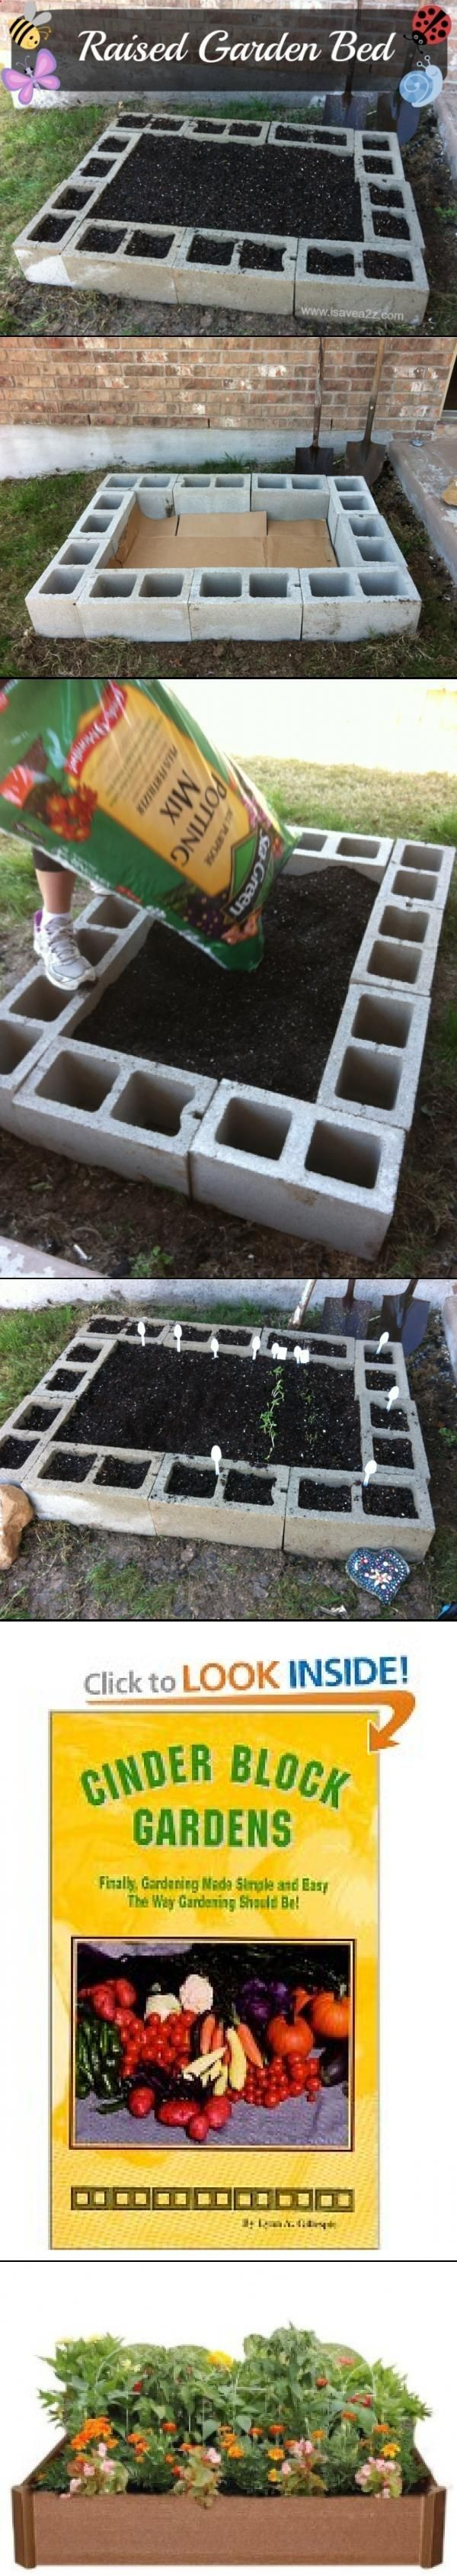 Cinder block garden. Wouldnt rot like wood. Hmmm... | campinglivezcampinglivez